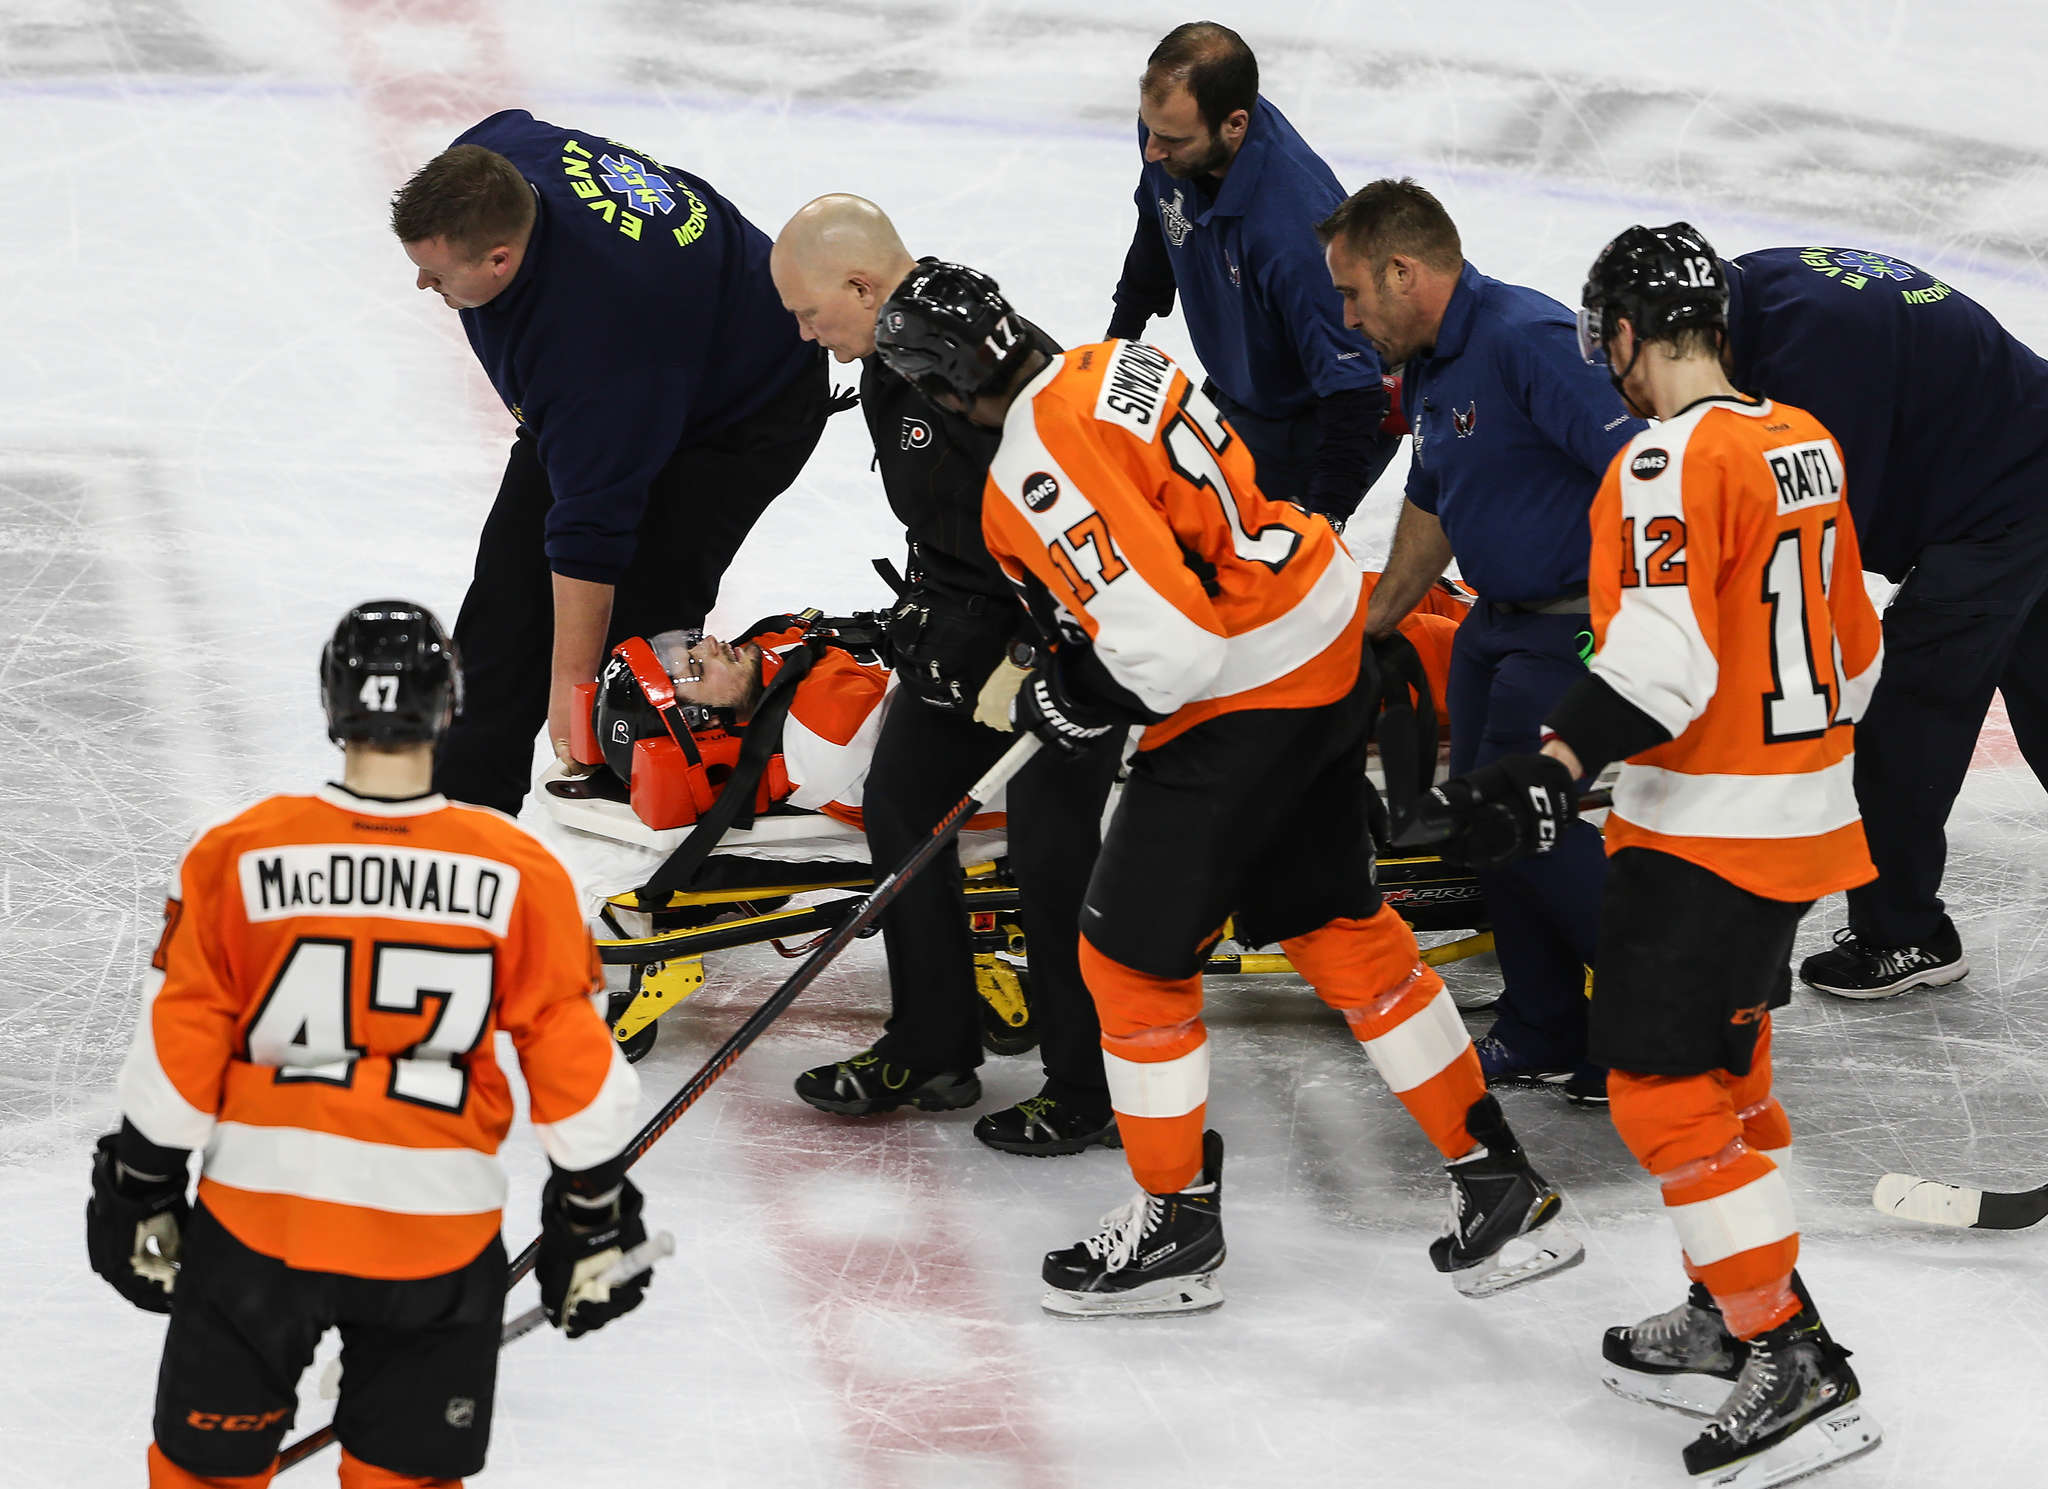 Scott Laughton is taken off the ice after sliding headfirst into the boards. STEVEN M. FALK / Staff Photographer